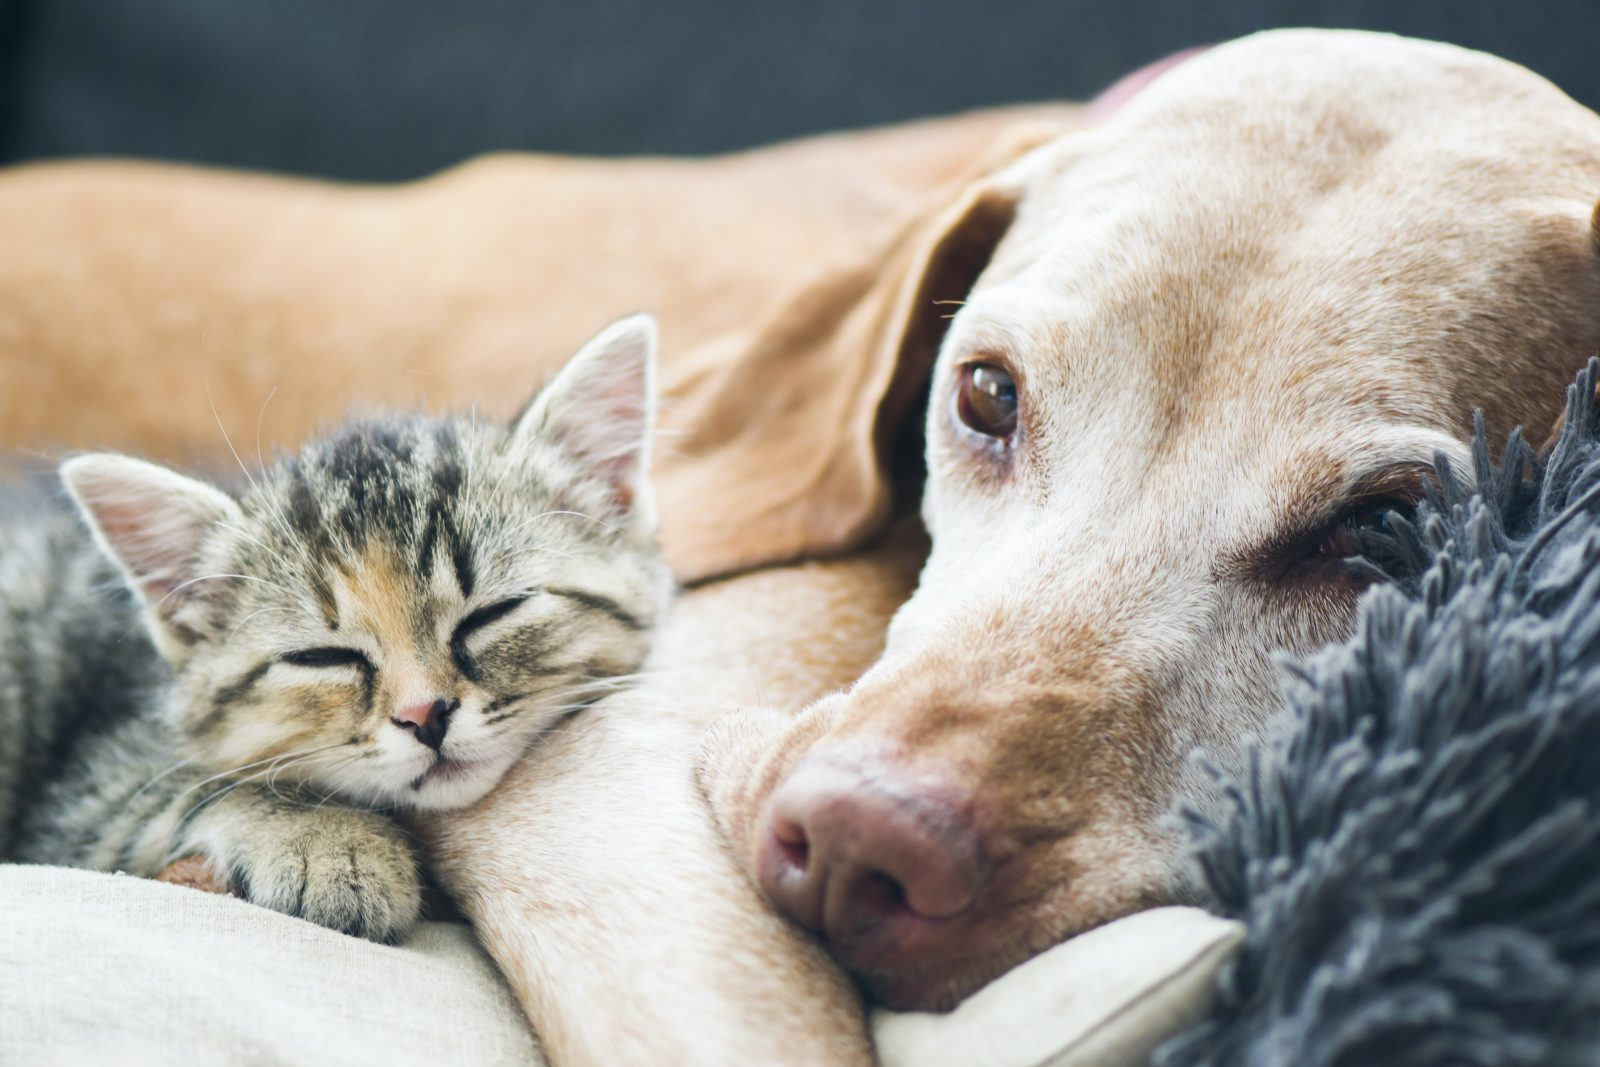 Pet research: 18 new insights about your furry friends.